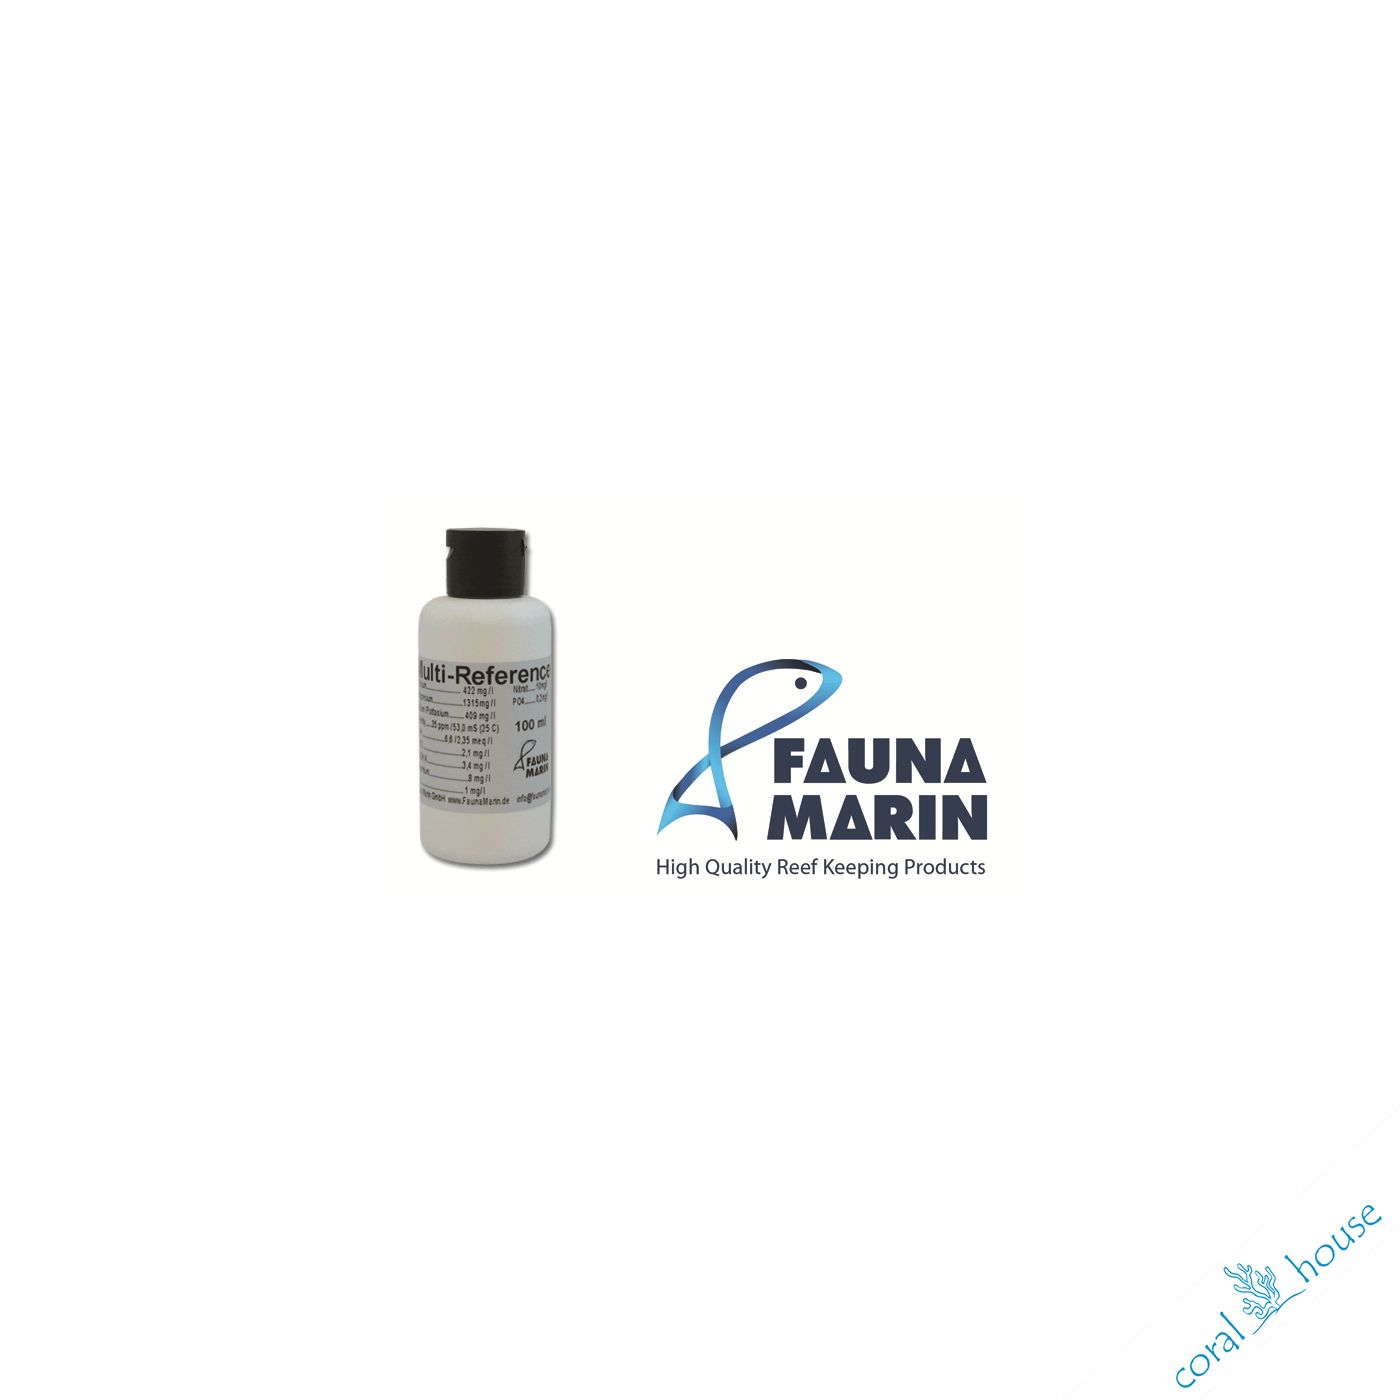 Fauna Marin Multi Reference 100ml